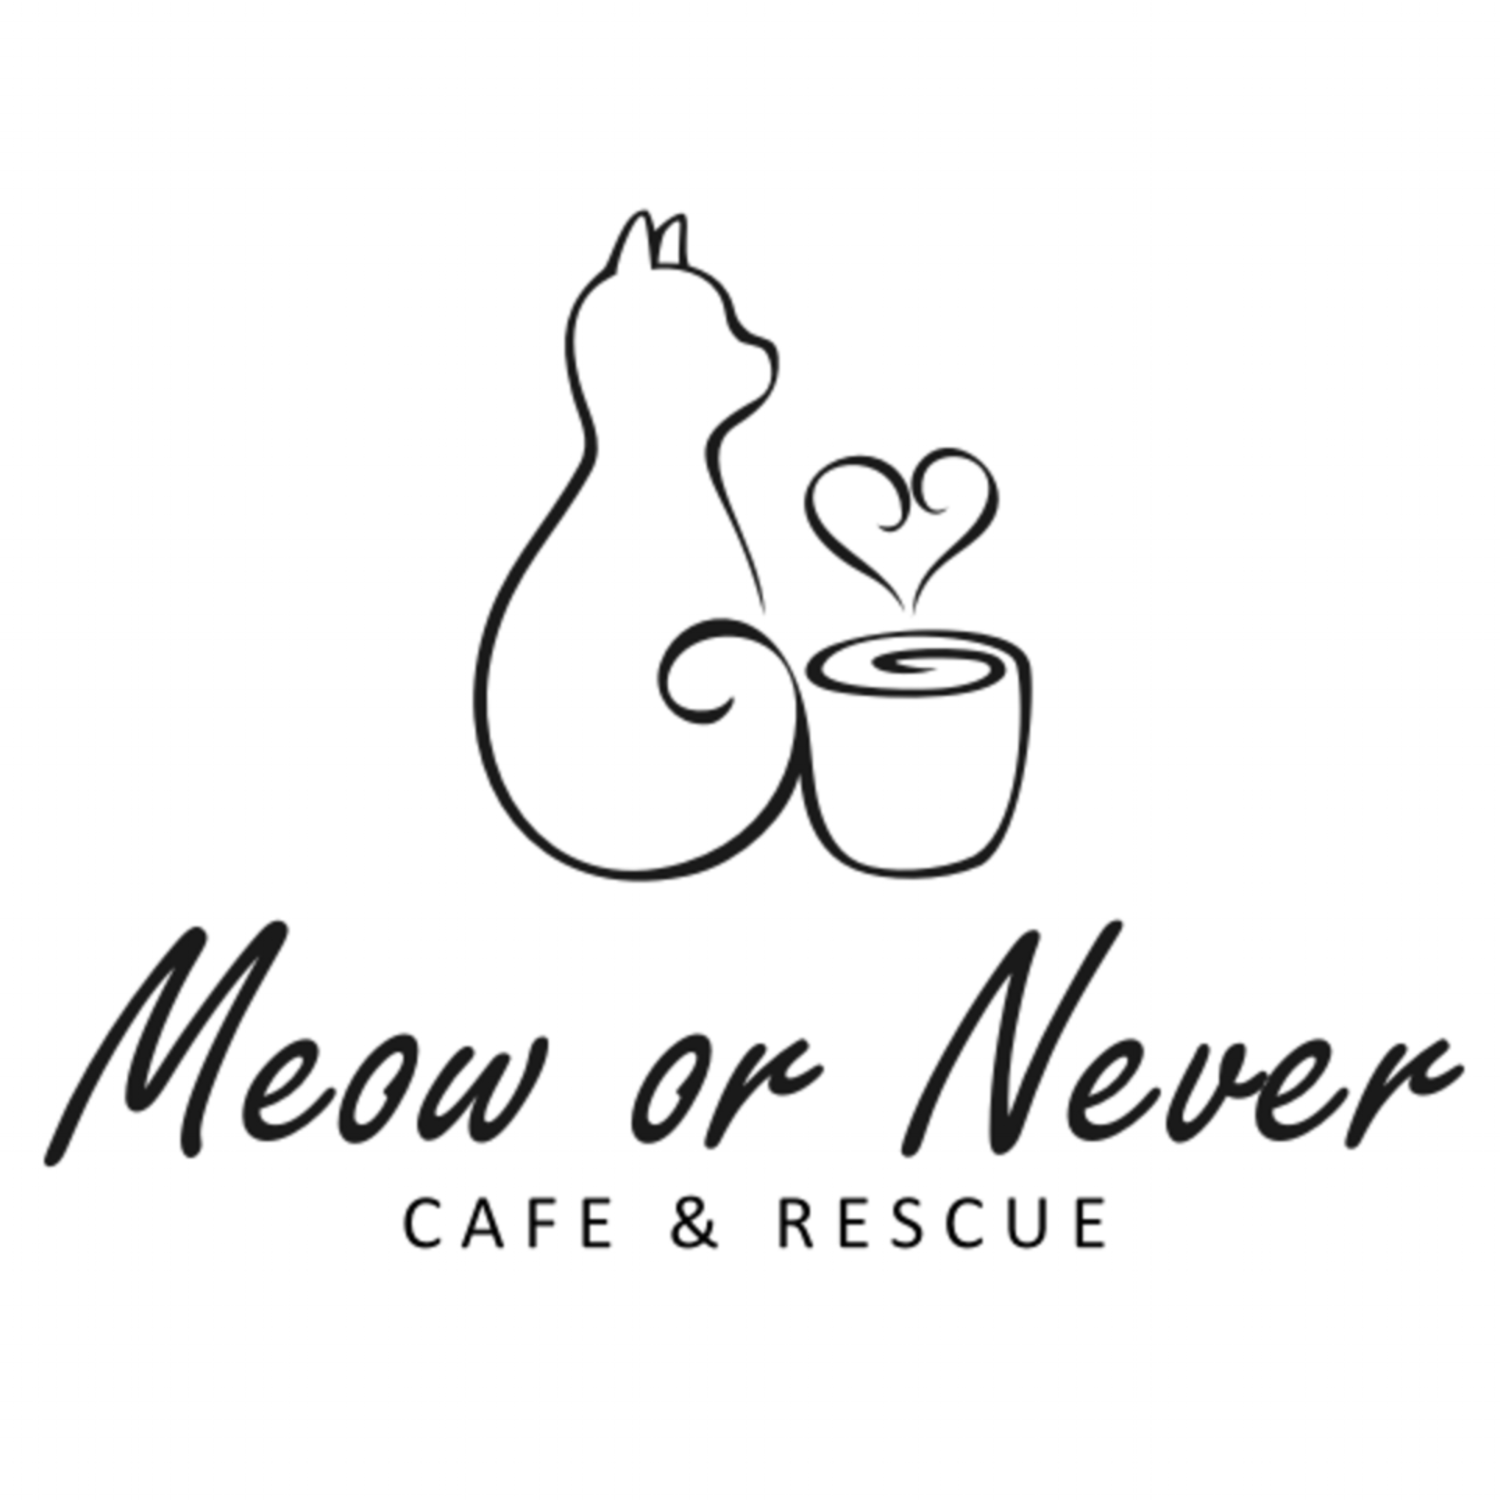 Meow or Never Las Vegas Cat Cafe & Rescue